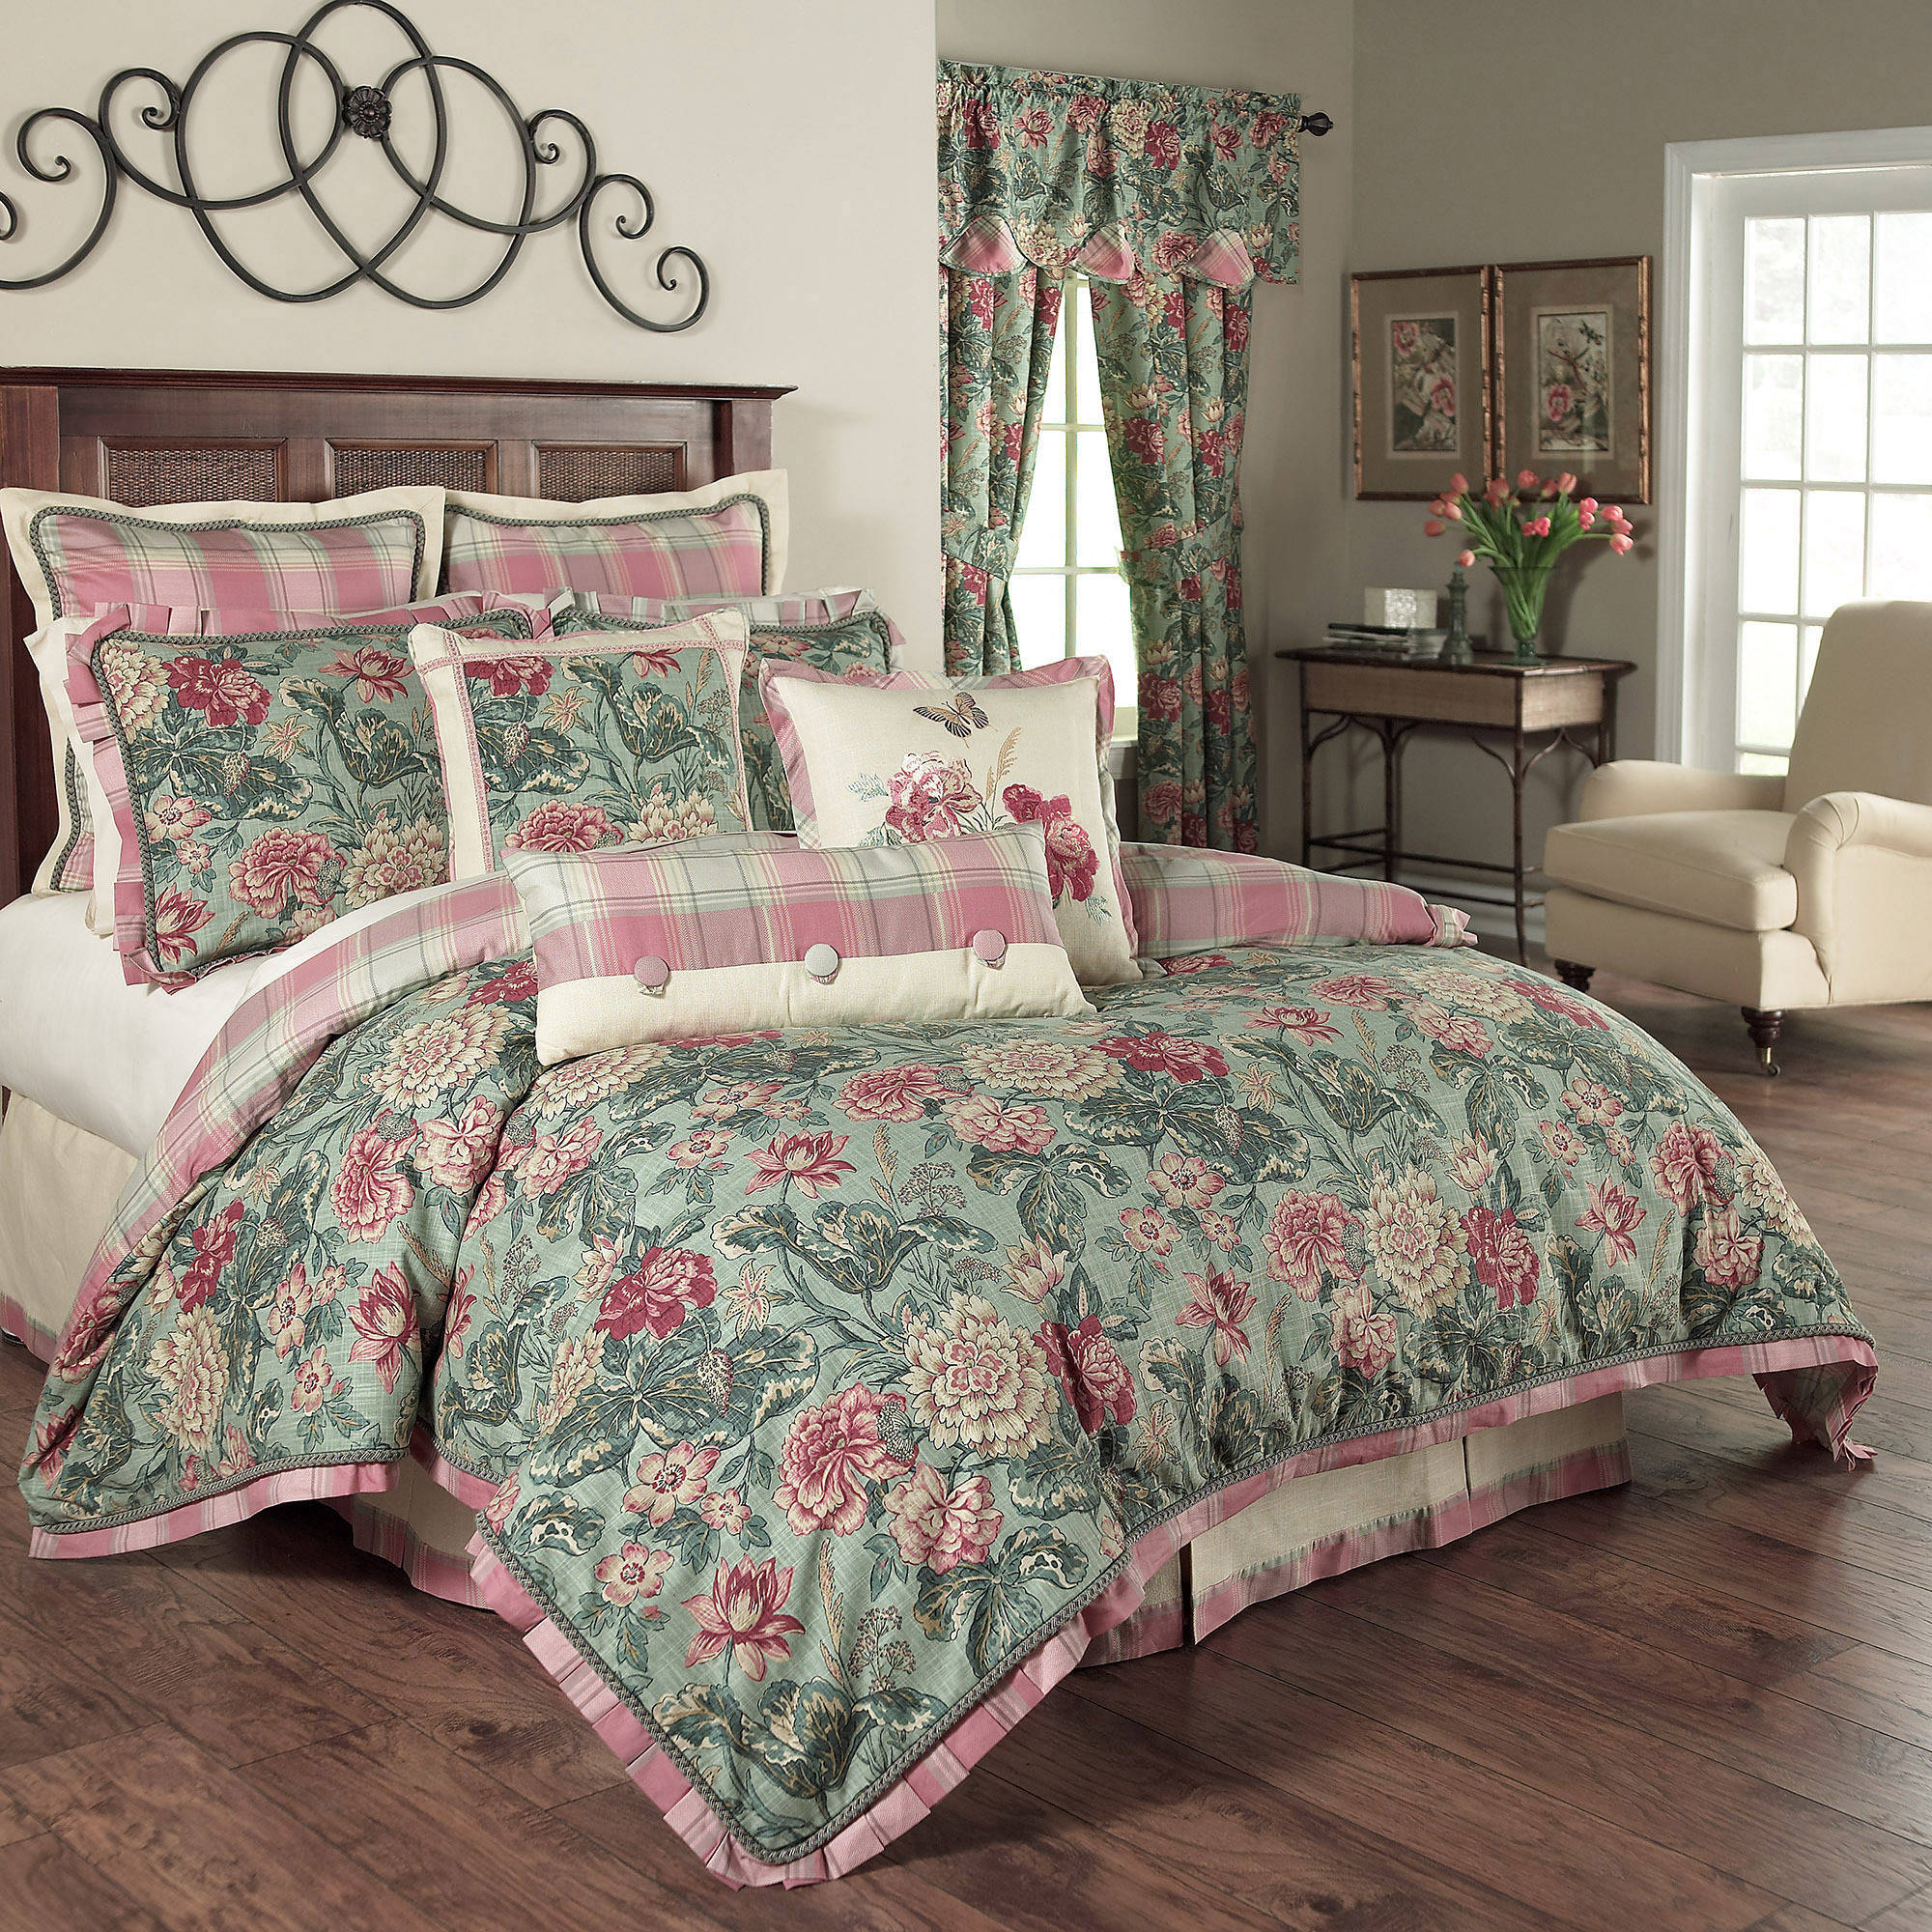 Waverly Sonnet Sublime 4-Piece Bedding Collection